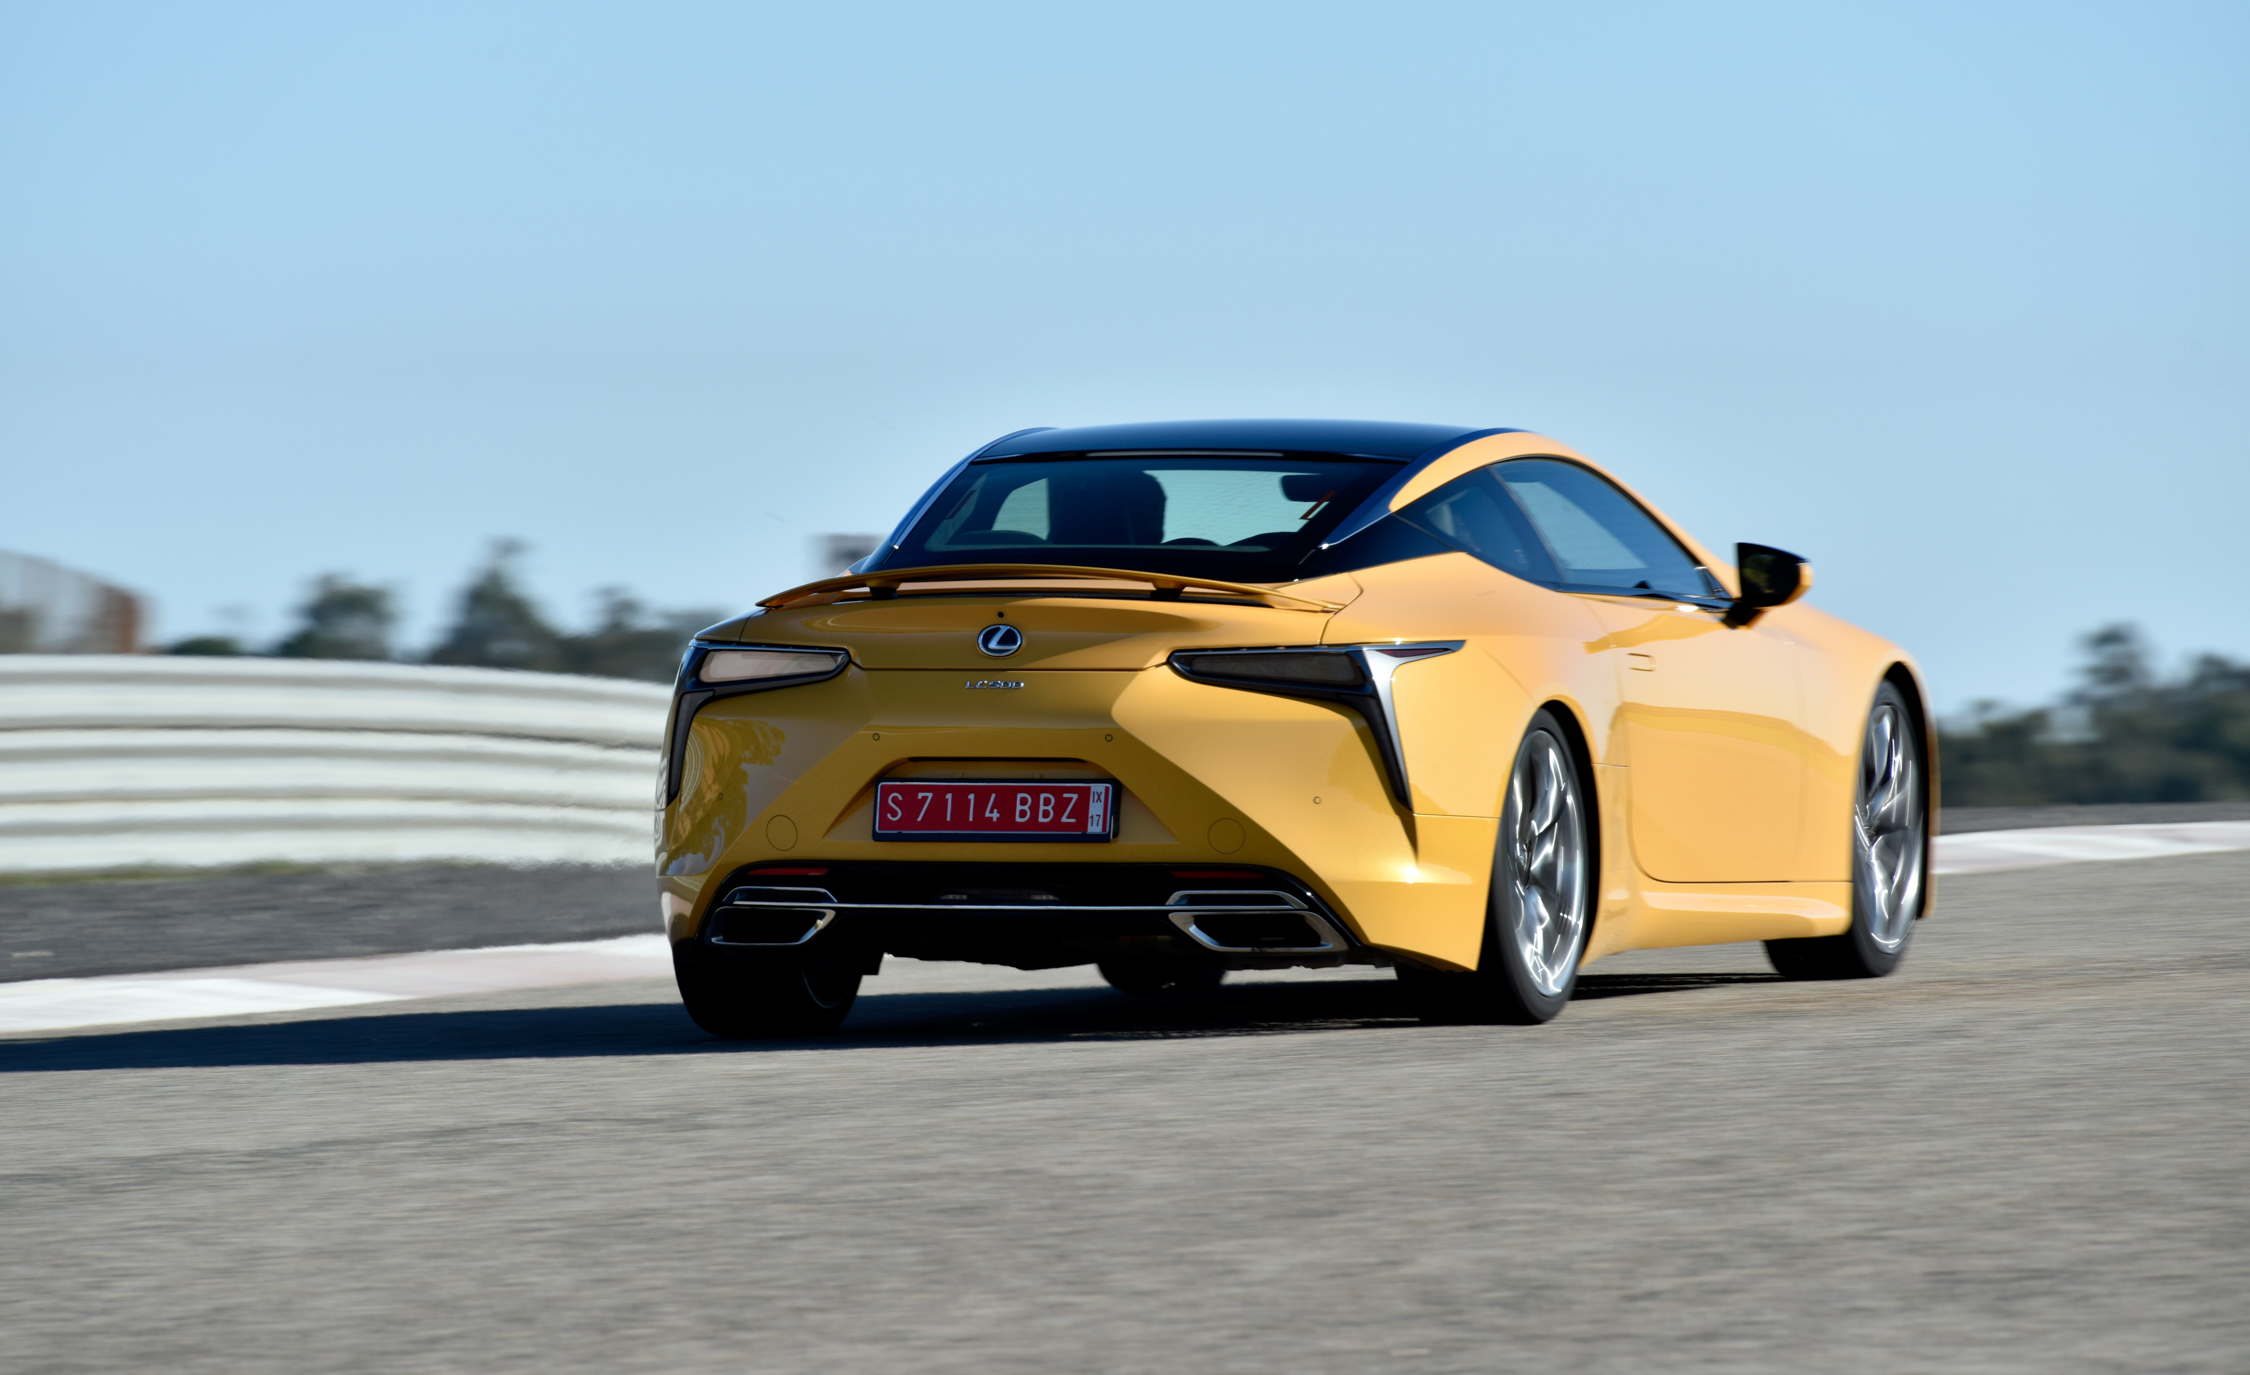 2018 Lexus Lc 500 Yellow Test Drive Rear Corner (View 15 of 84)